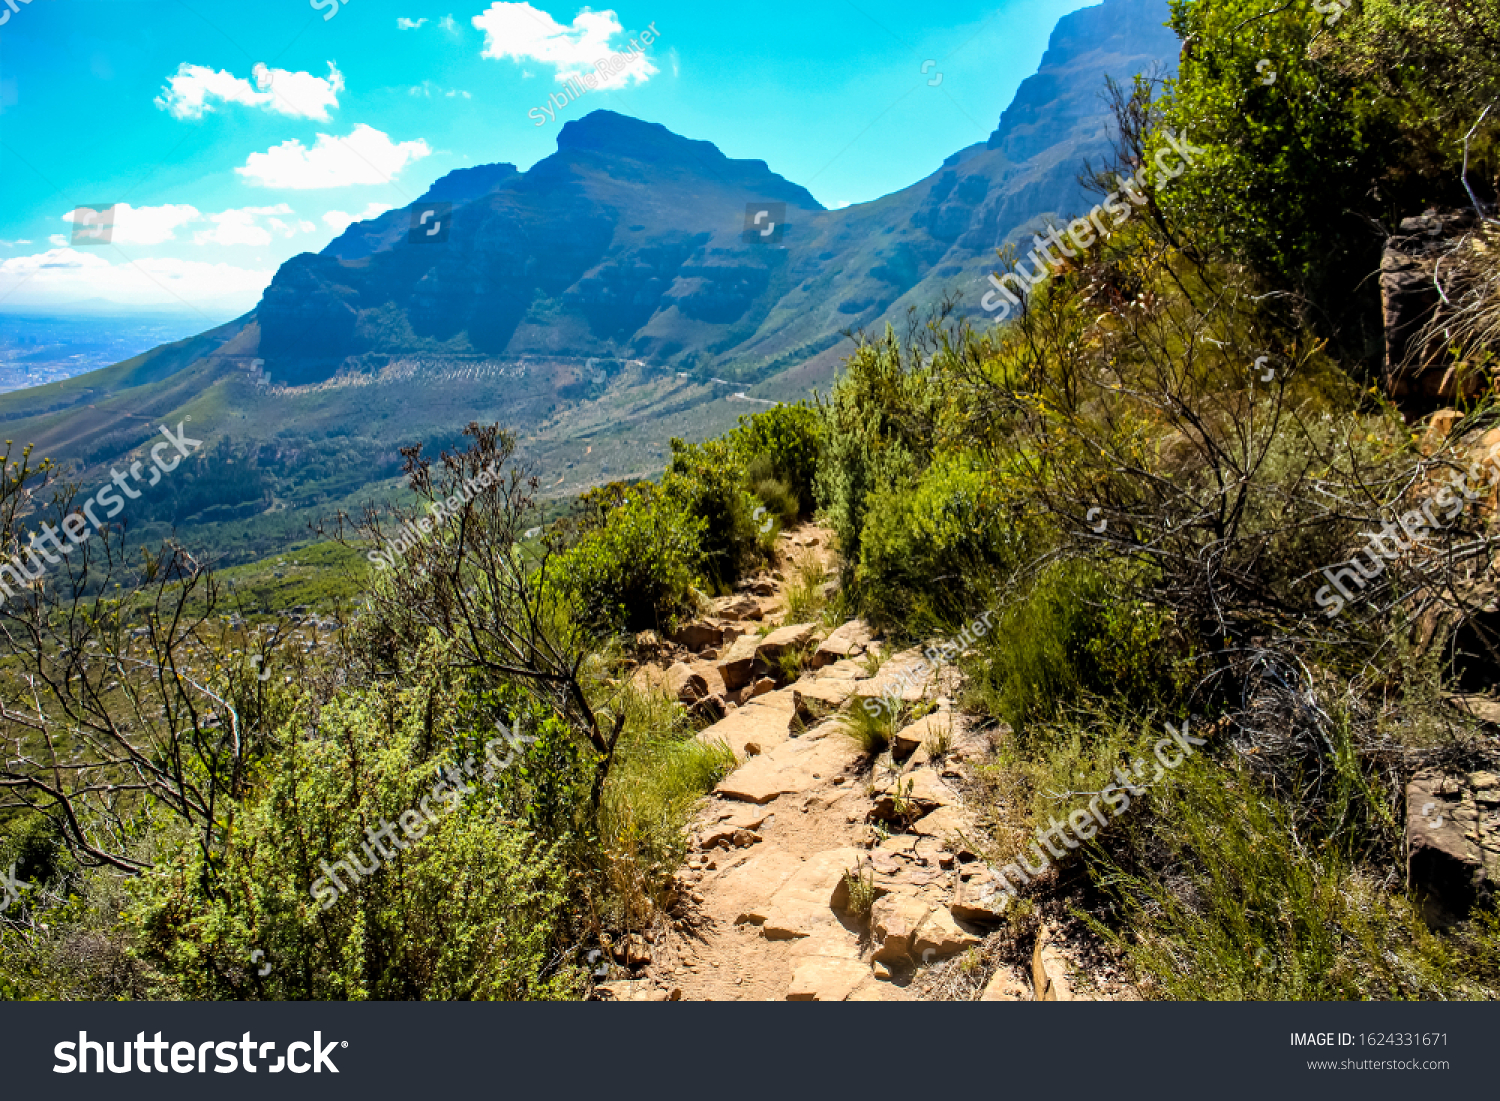 stock-photo-small-path-leading-up-platte